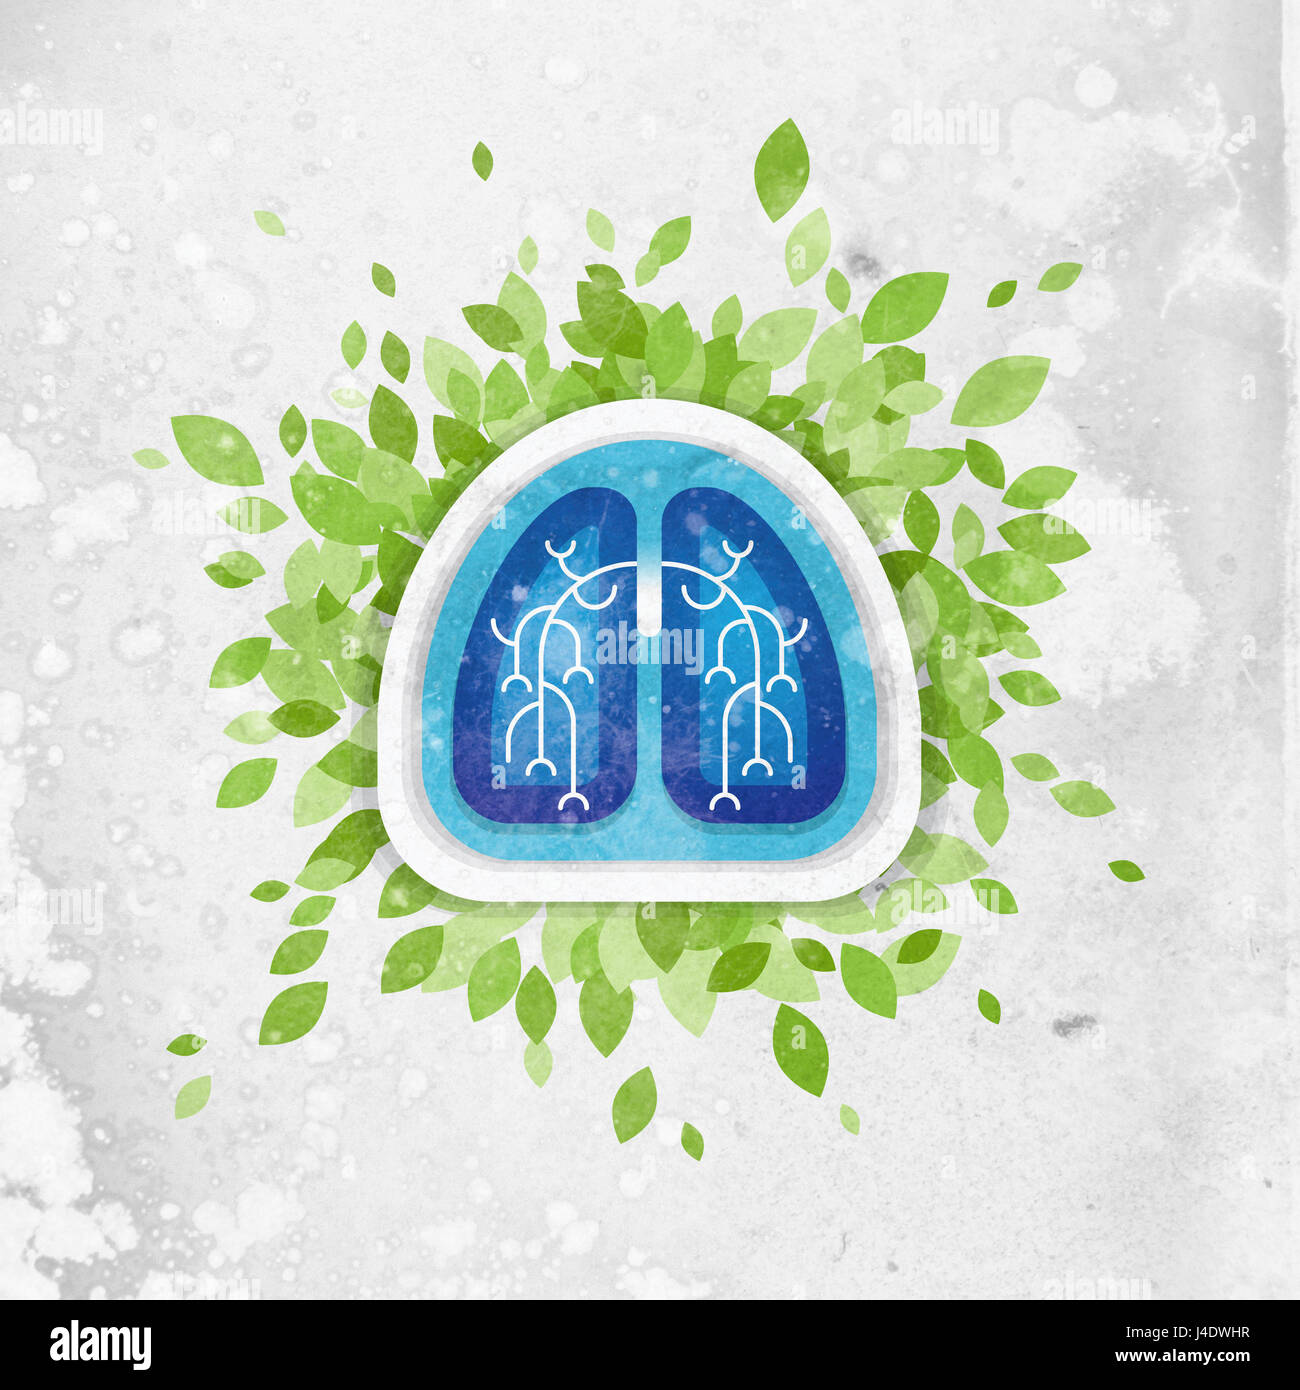 Lungs and leaves illustration, health concept - Stock Image